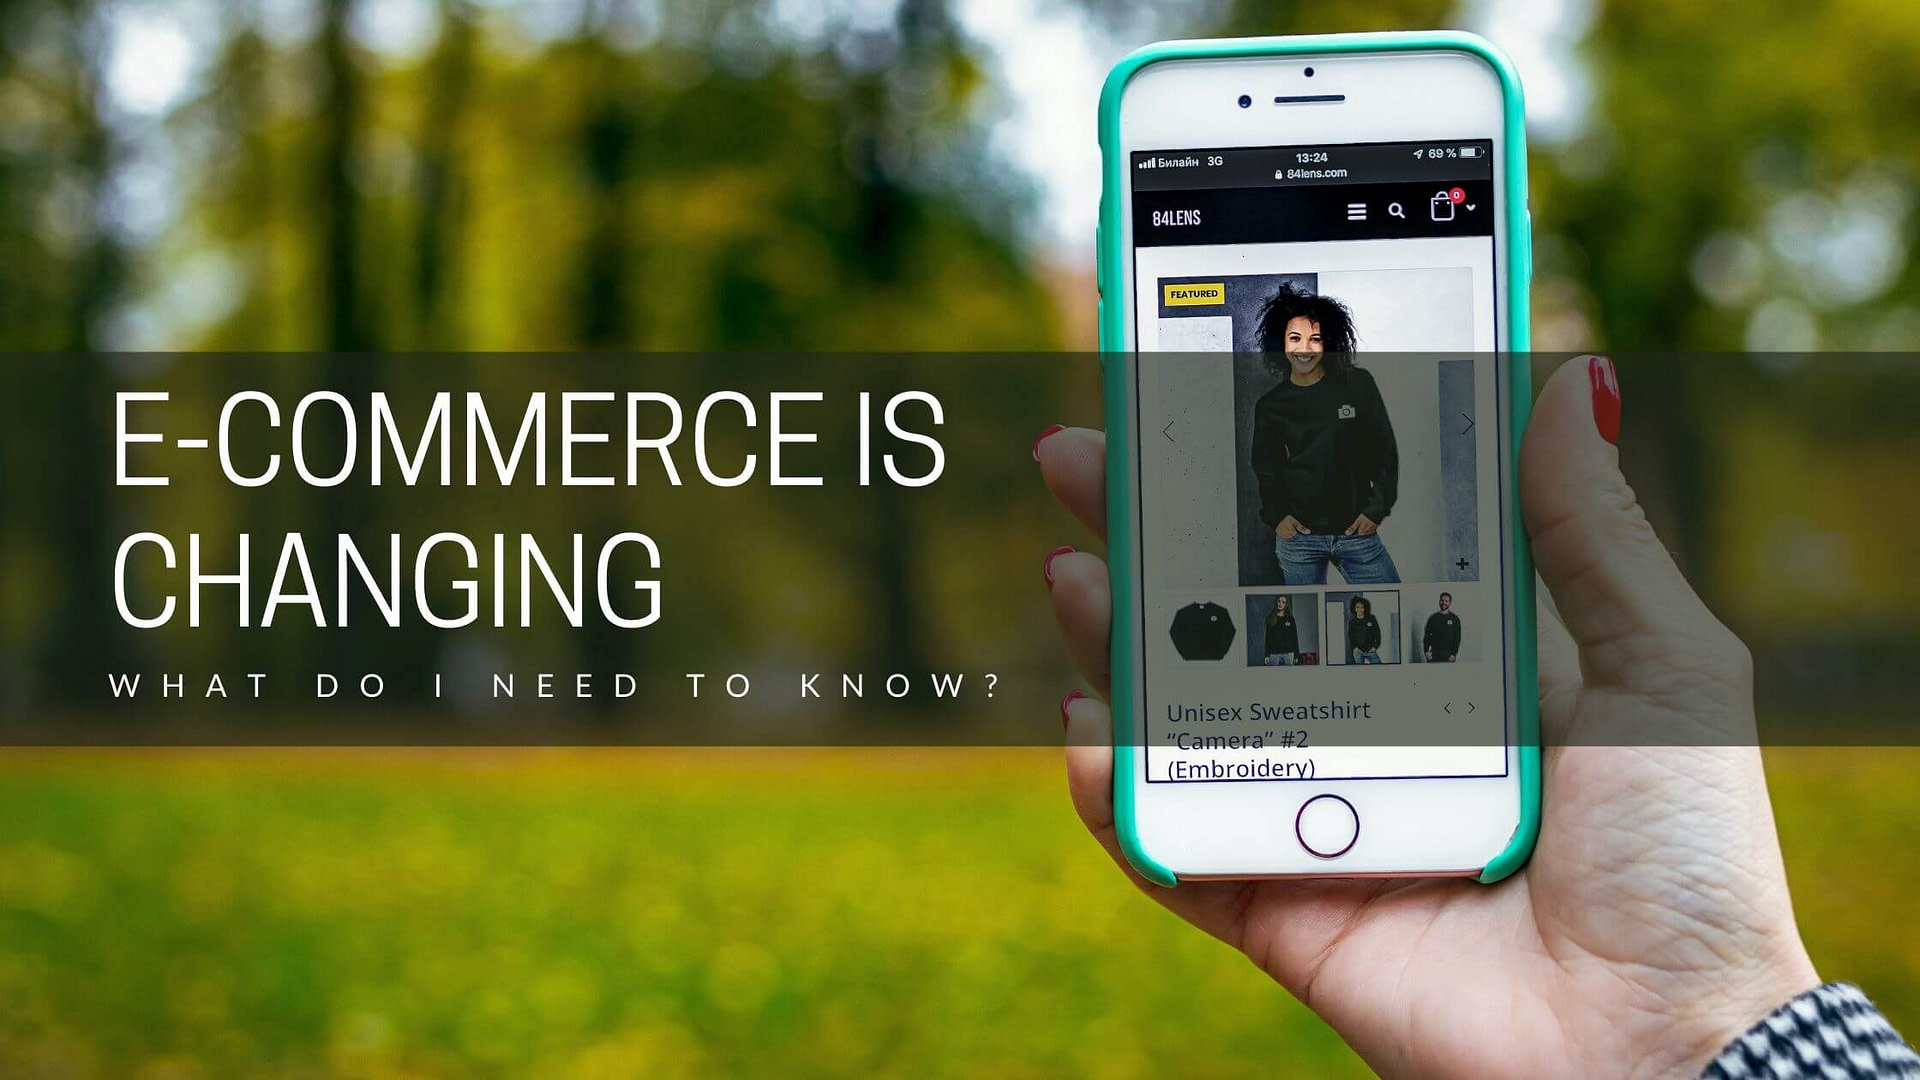 E-Commerce is Changing. What Do I Need to Know?